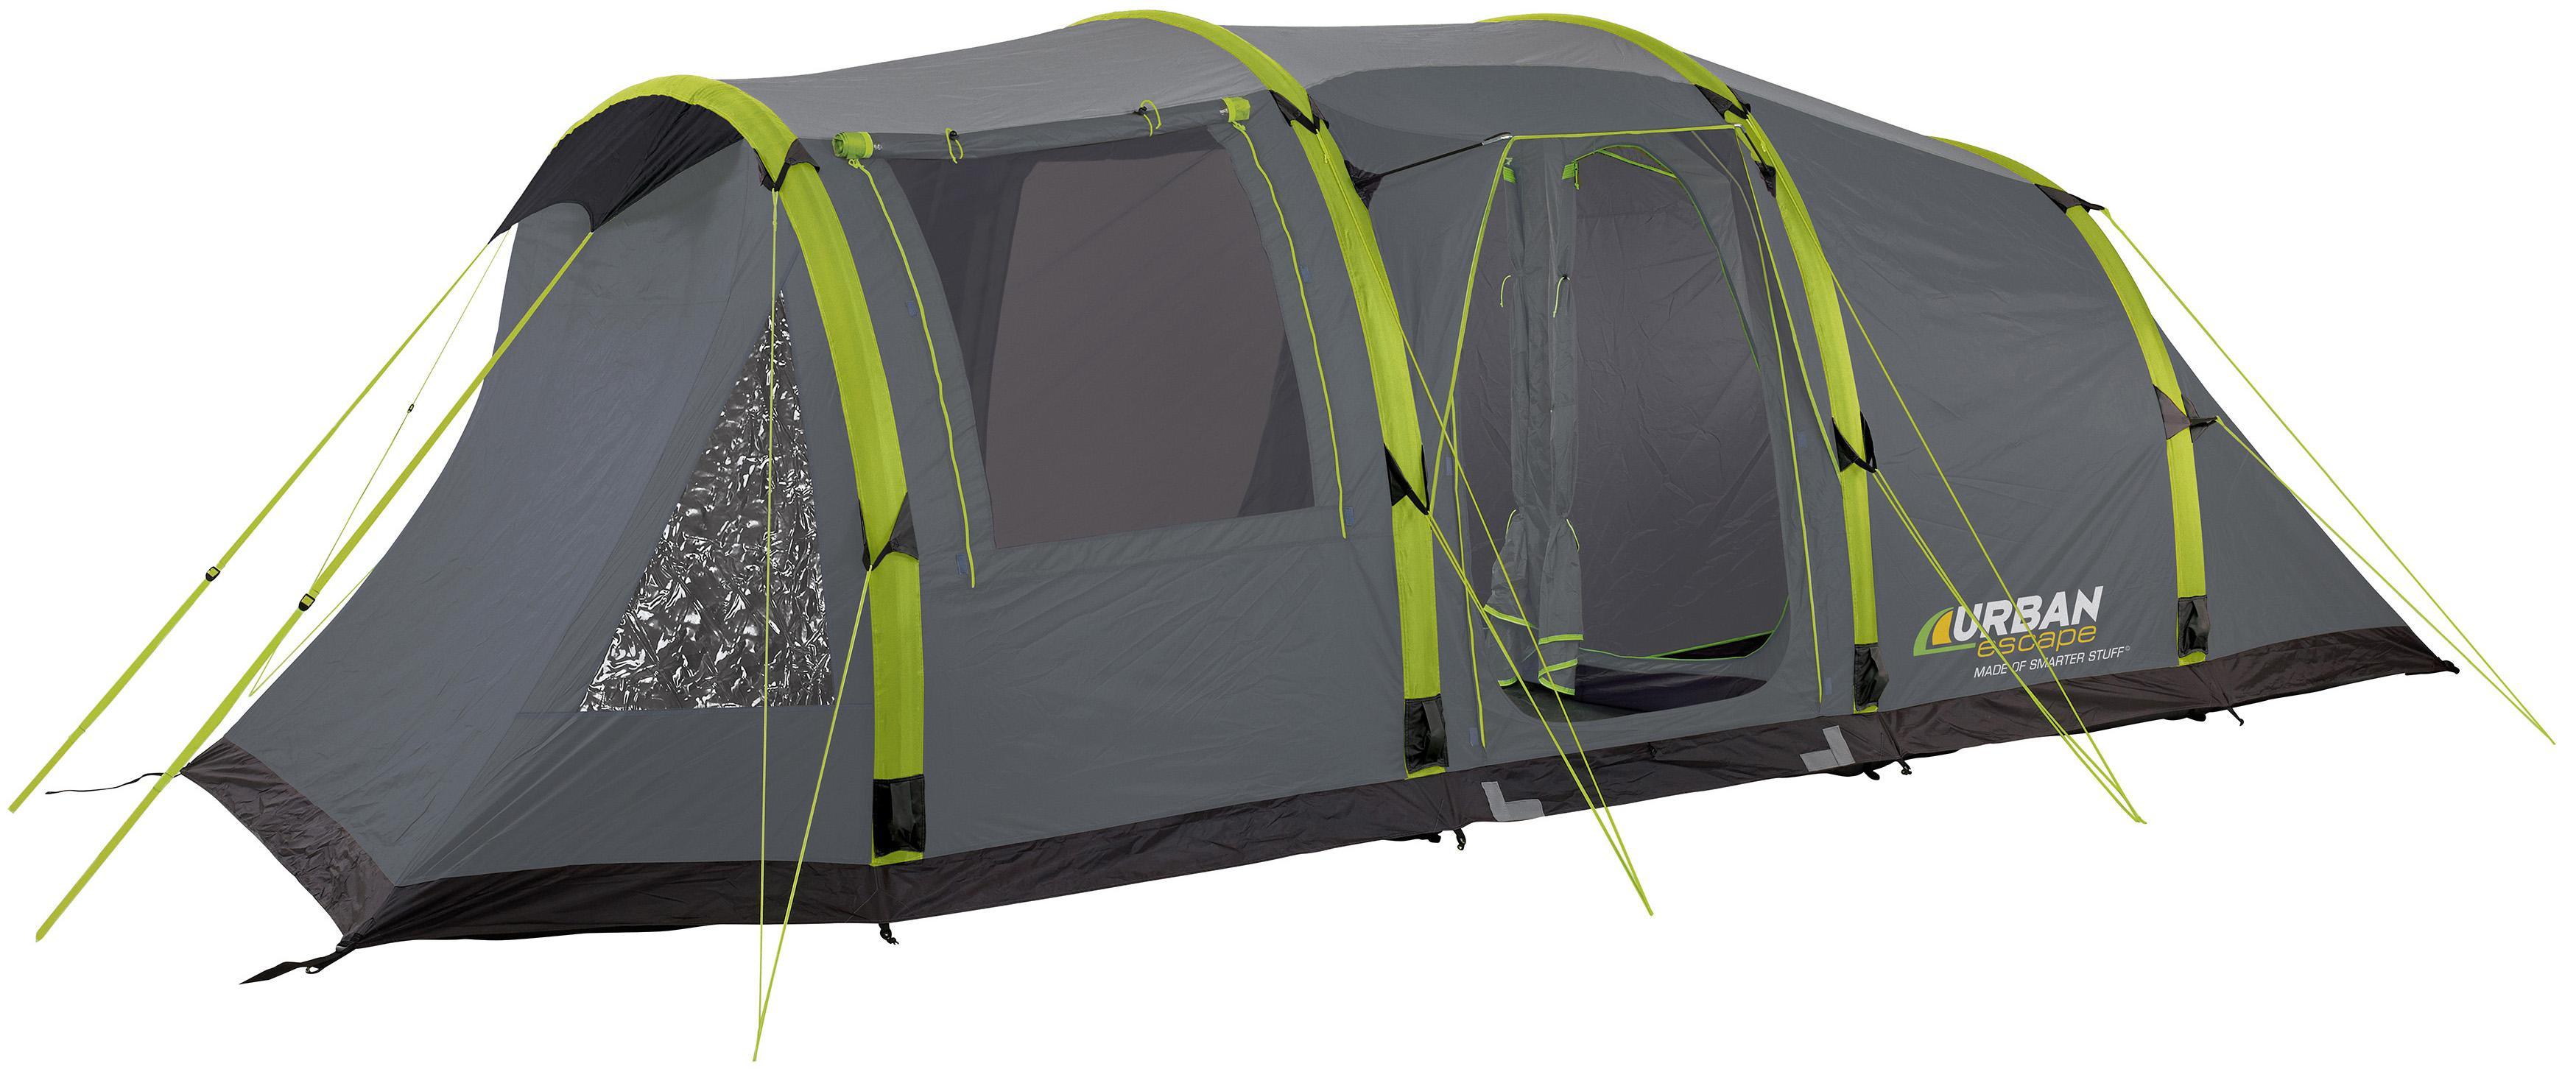 Urban Escape 6 Man Inflatable Tent  sc 1 st  Halfords & Escape 6 Man Inflatable Tent